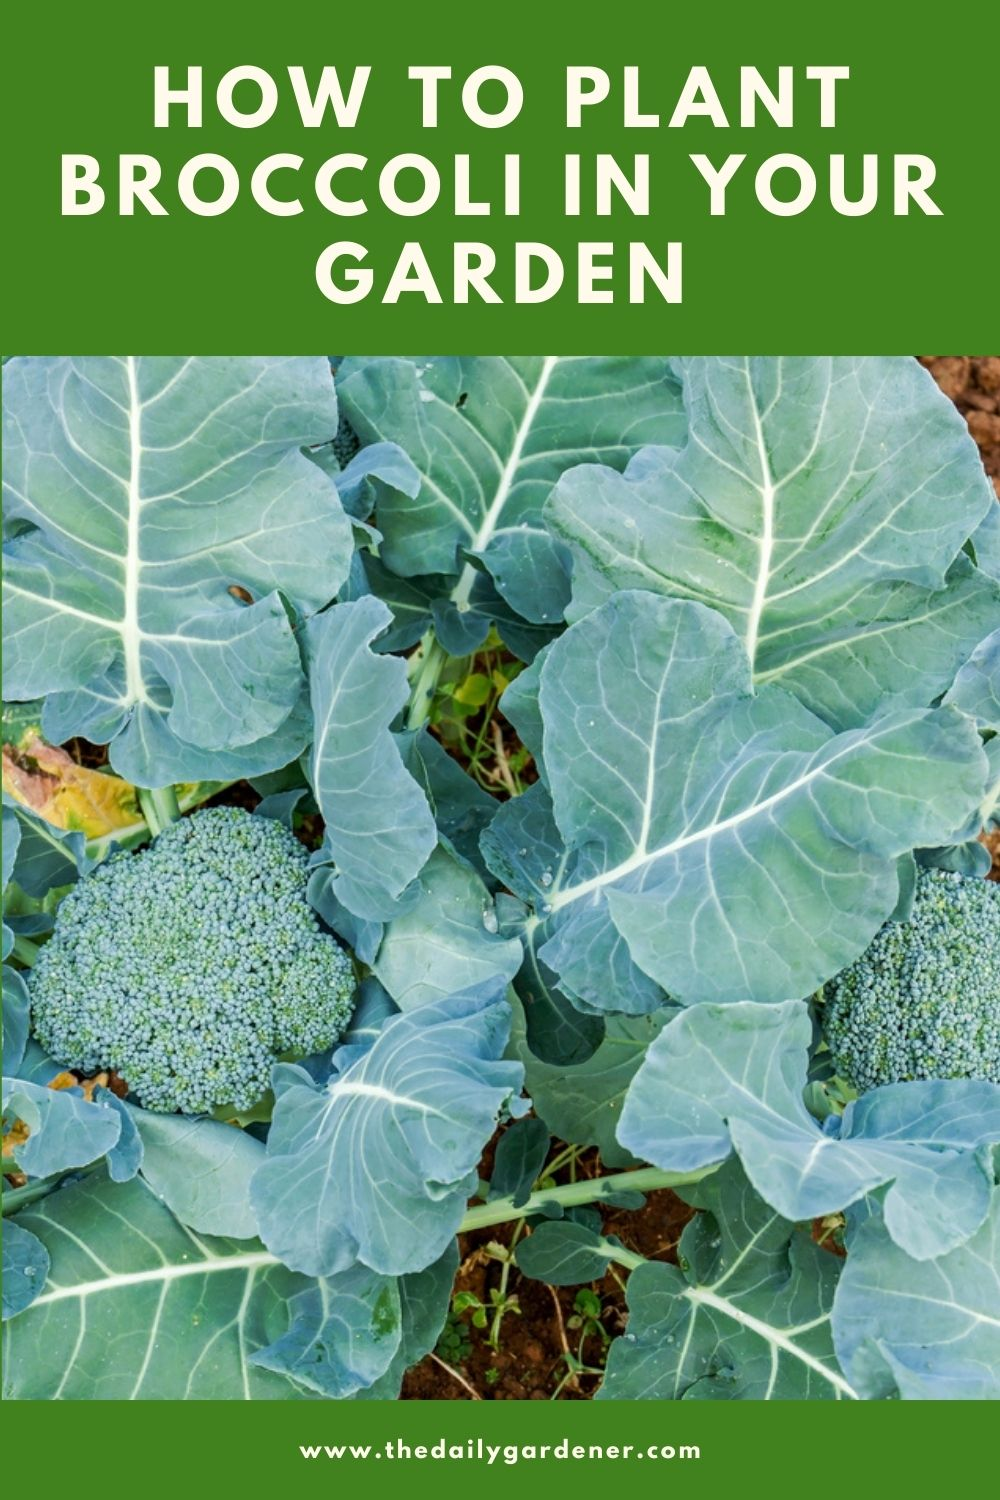 How to Plant Broccoli in Your Garden (Tricks to Care!) 1